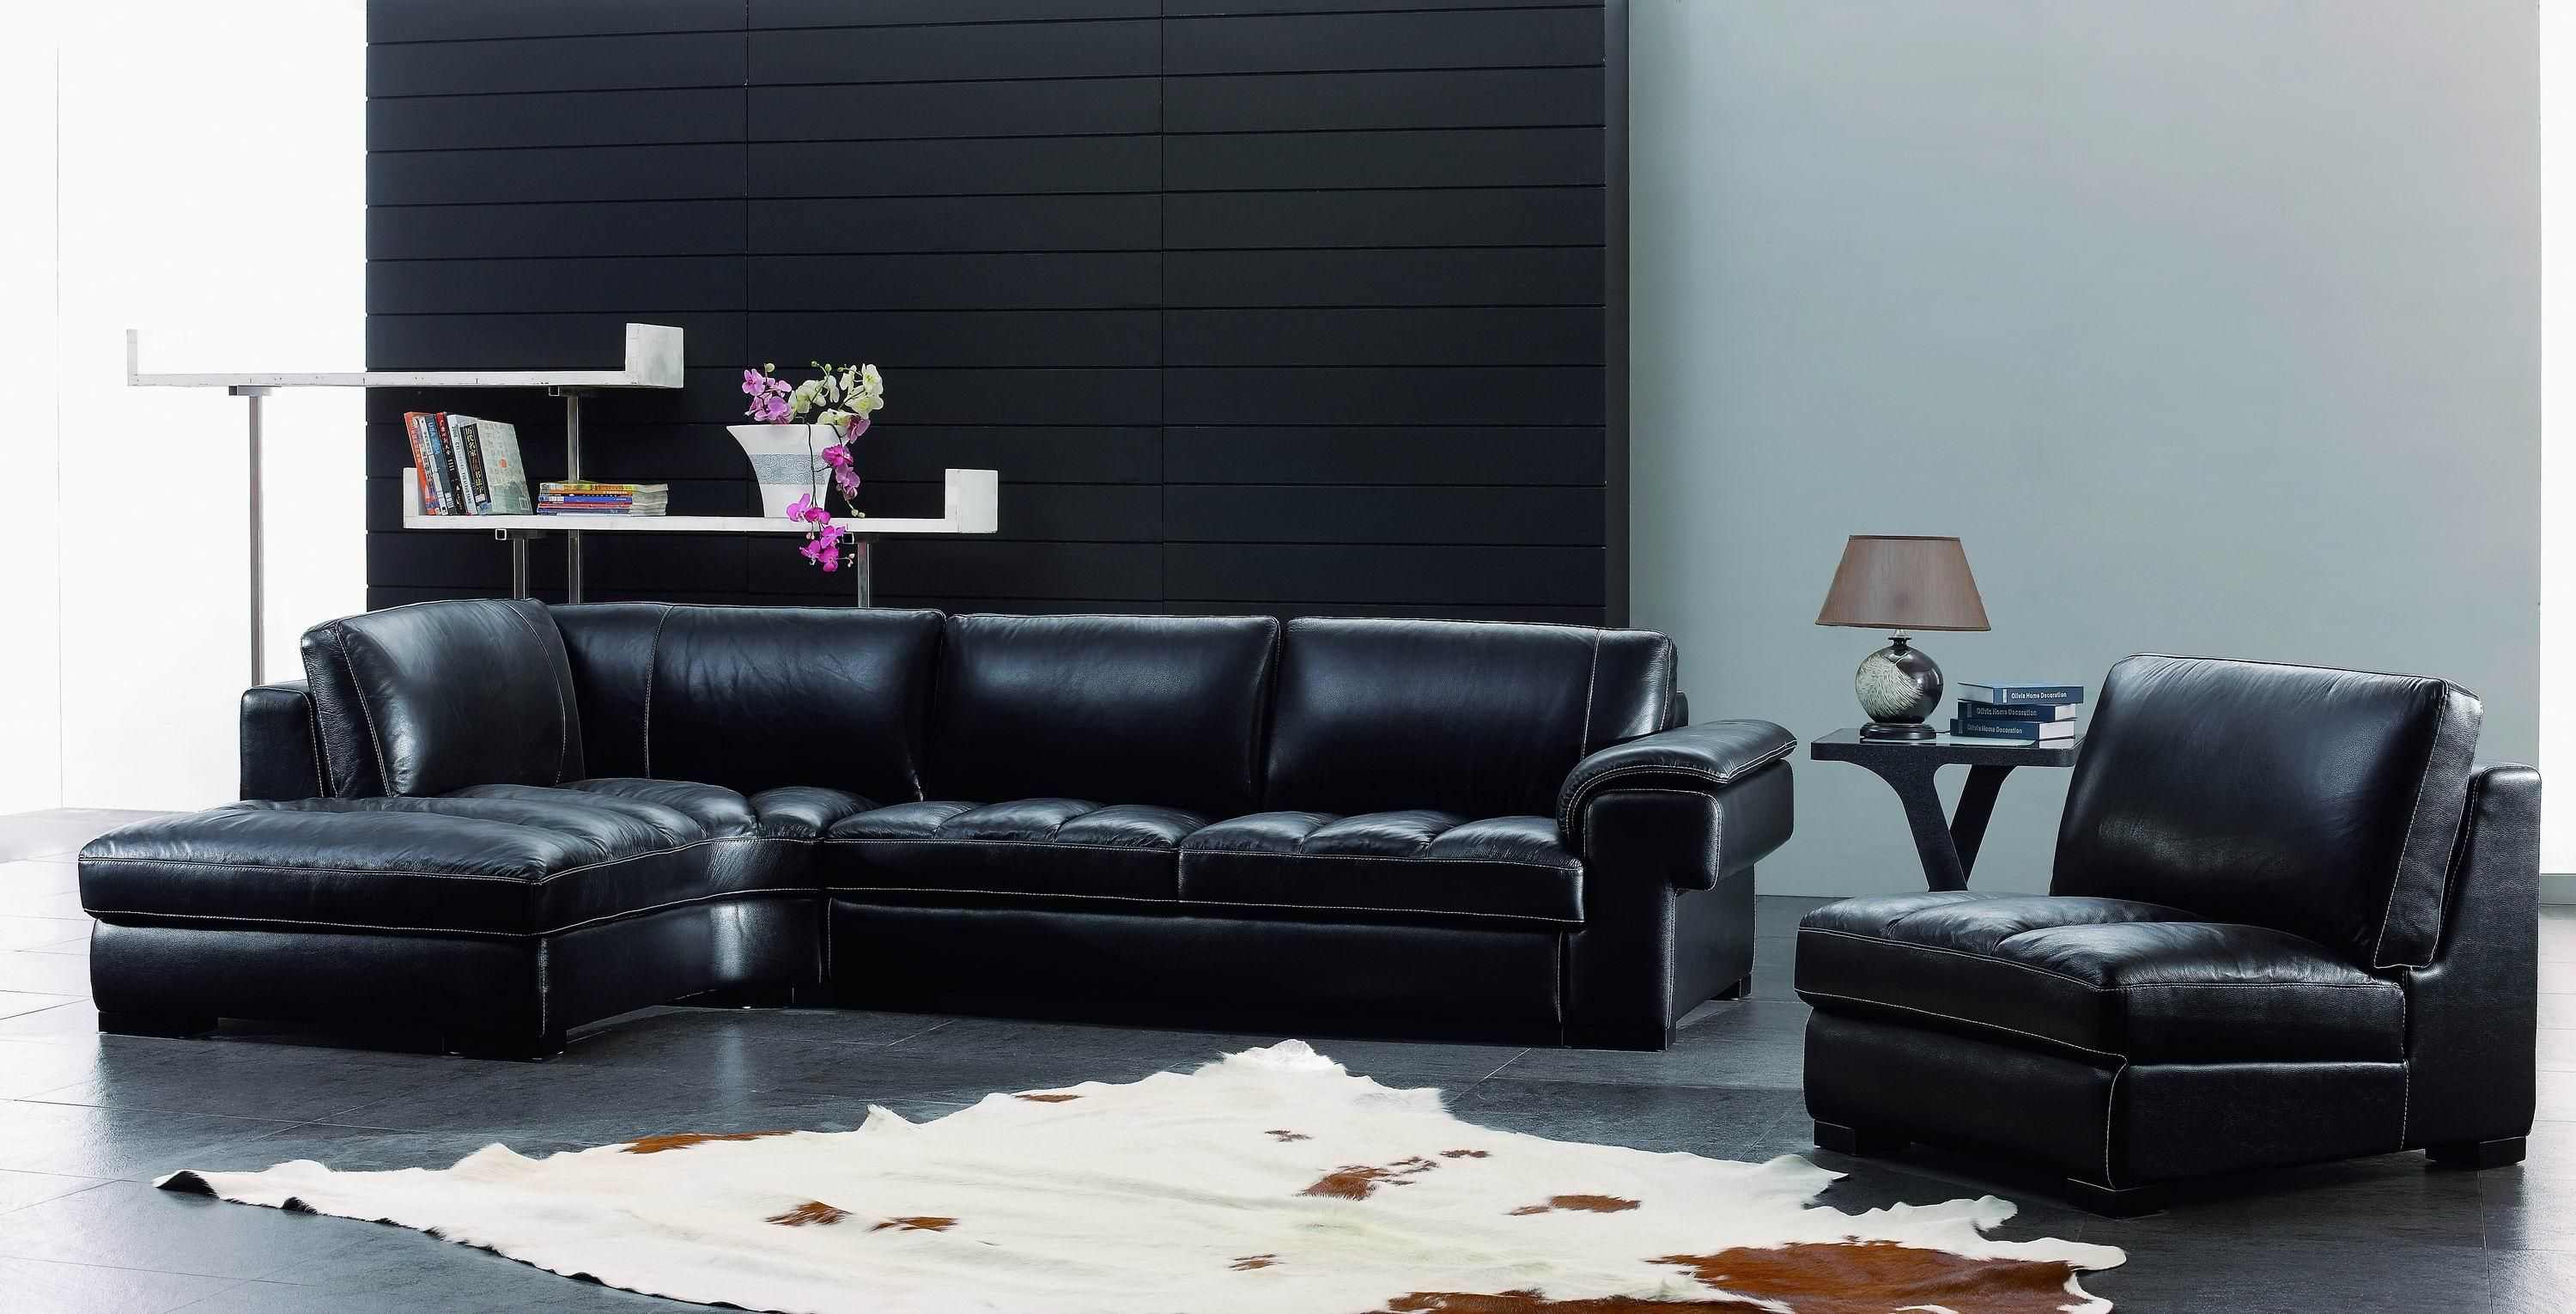 wall color ideas for living room with black furniture euskalnet